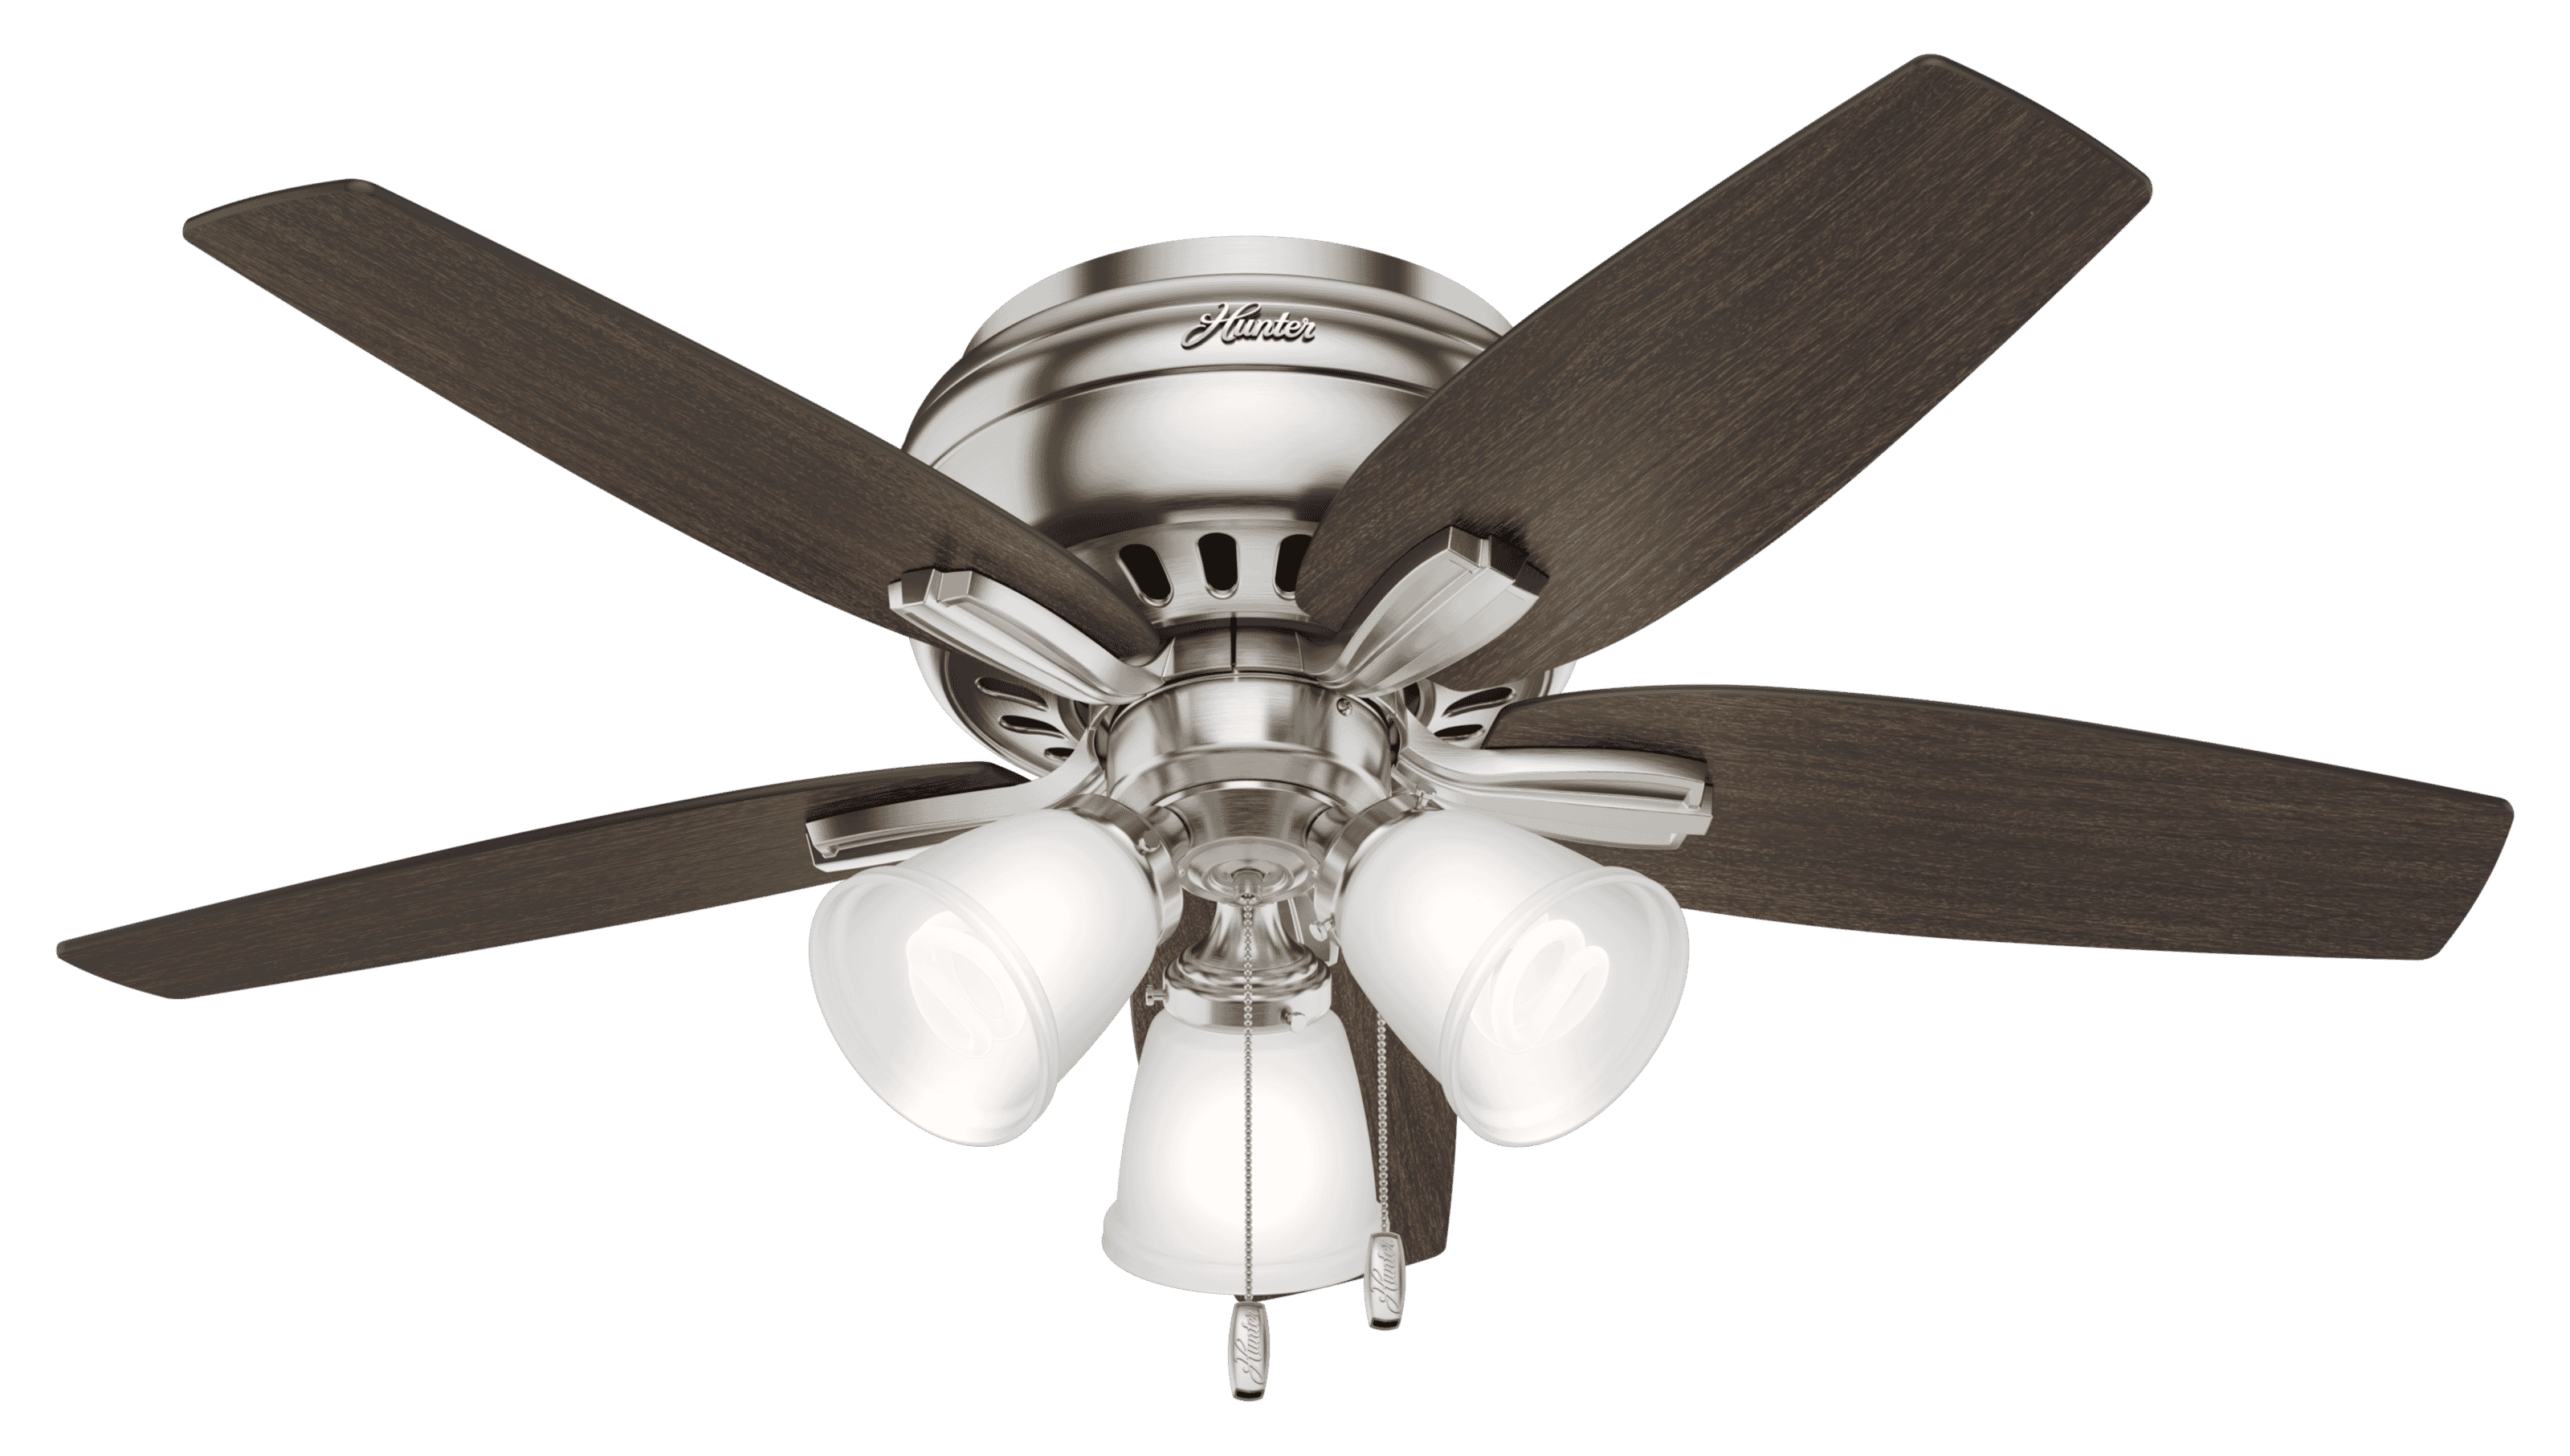 Hunter Fans Newsome Low Profile 3 Light 42 Indoor Ceiling Fan In Brushed Nickel